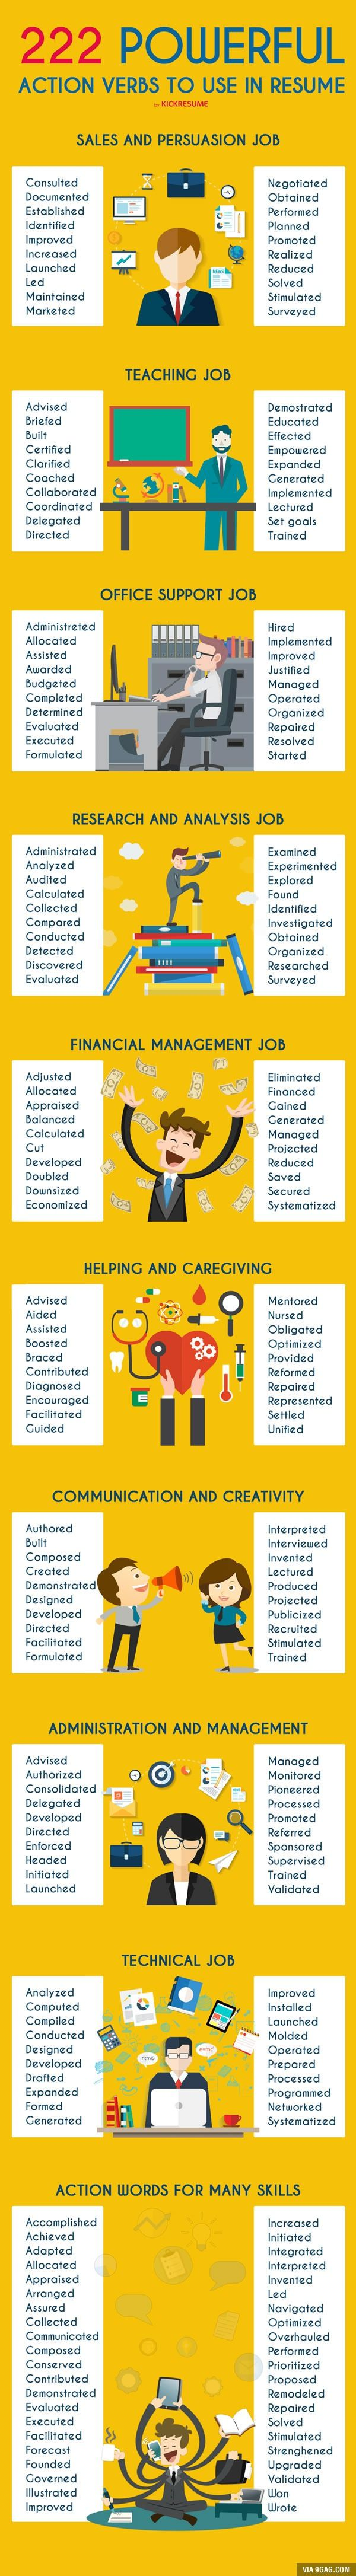 resume power verbs and resume tips to boost your resume resume resume cheat sheet 222 action verbs to use in your new resume